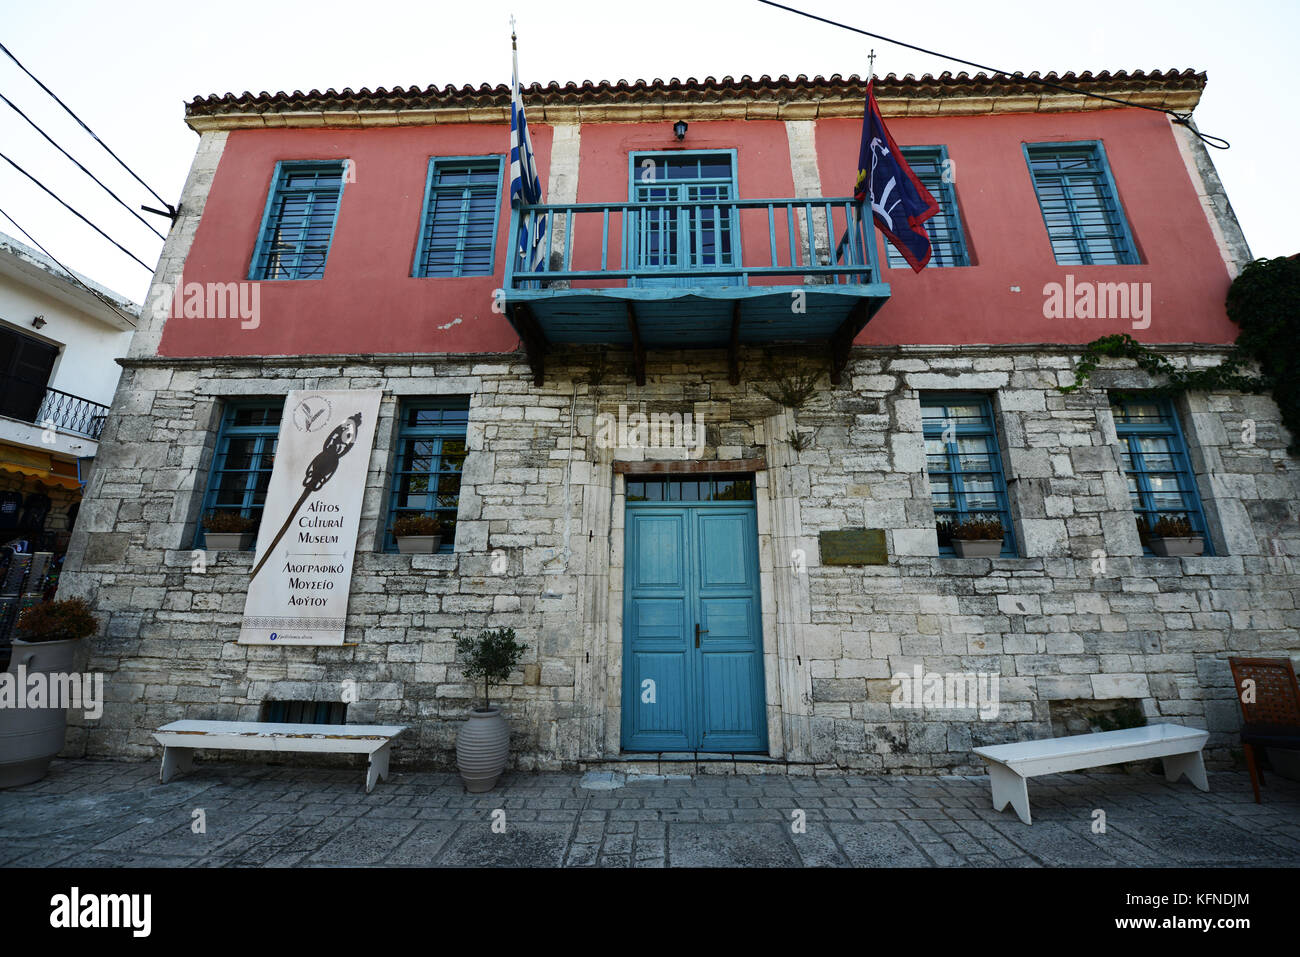 The  Afytos cultural museum in Afytos, Chalkidiki. Stock Photo